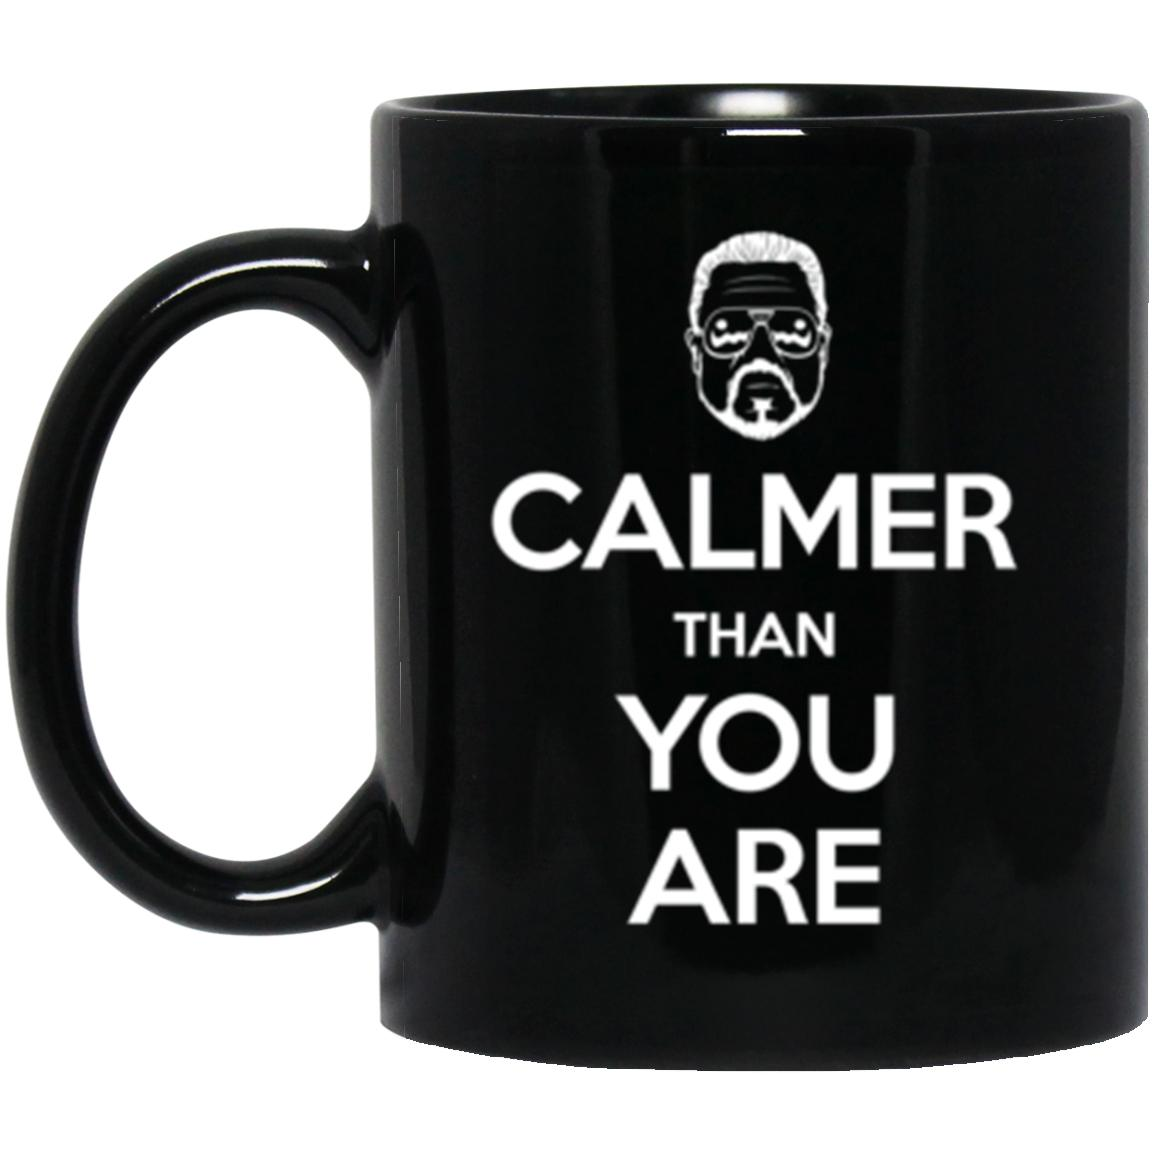 Drinkware - Keep Calmer Mug 11oz (2-sided)